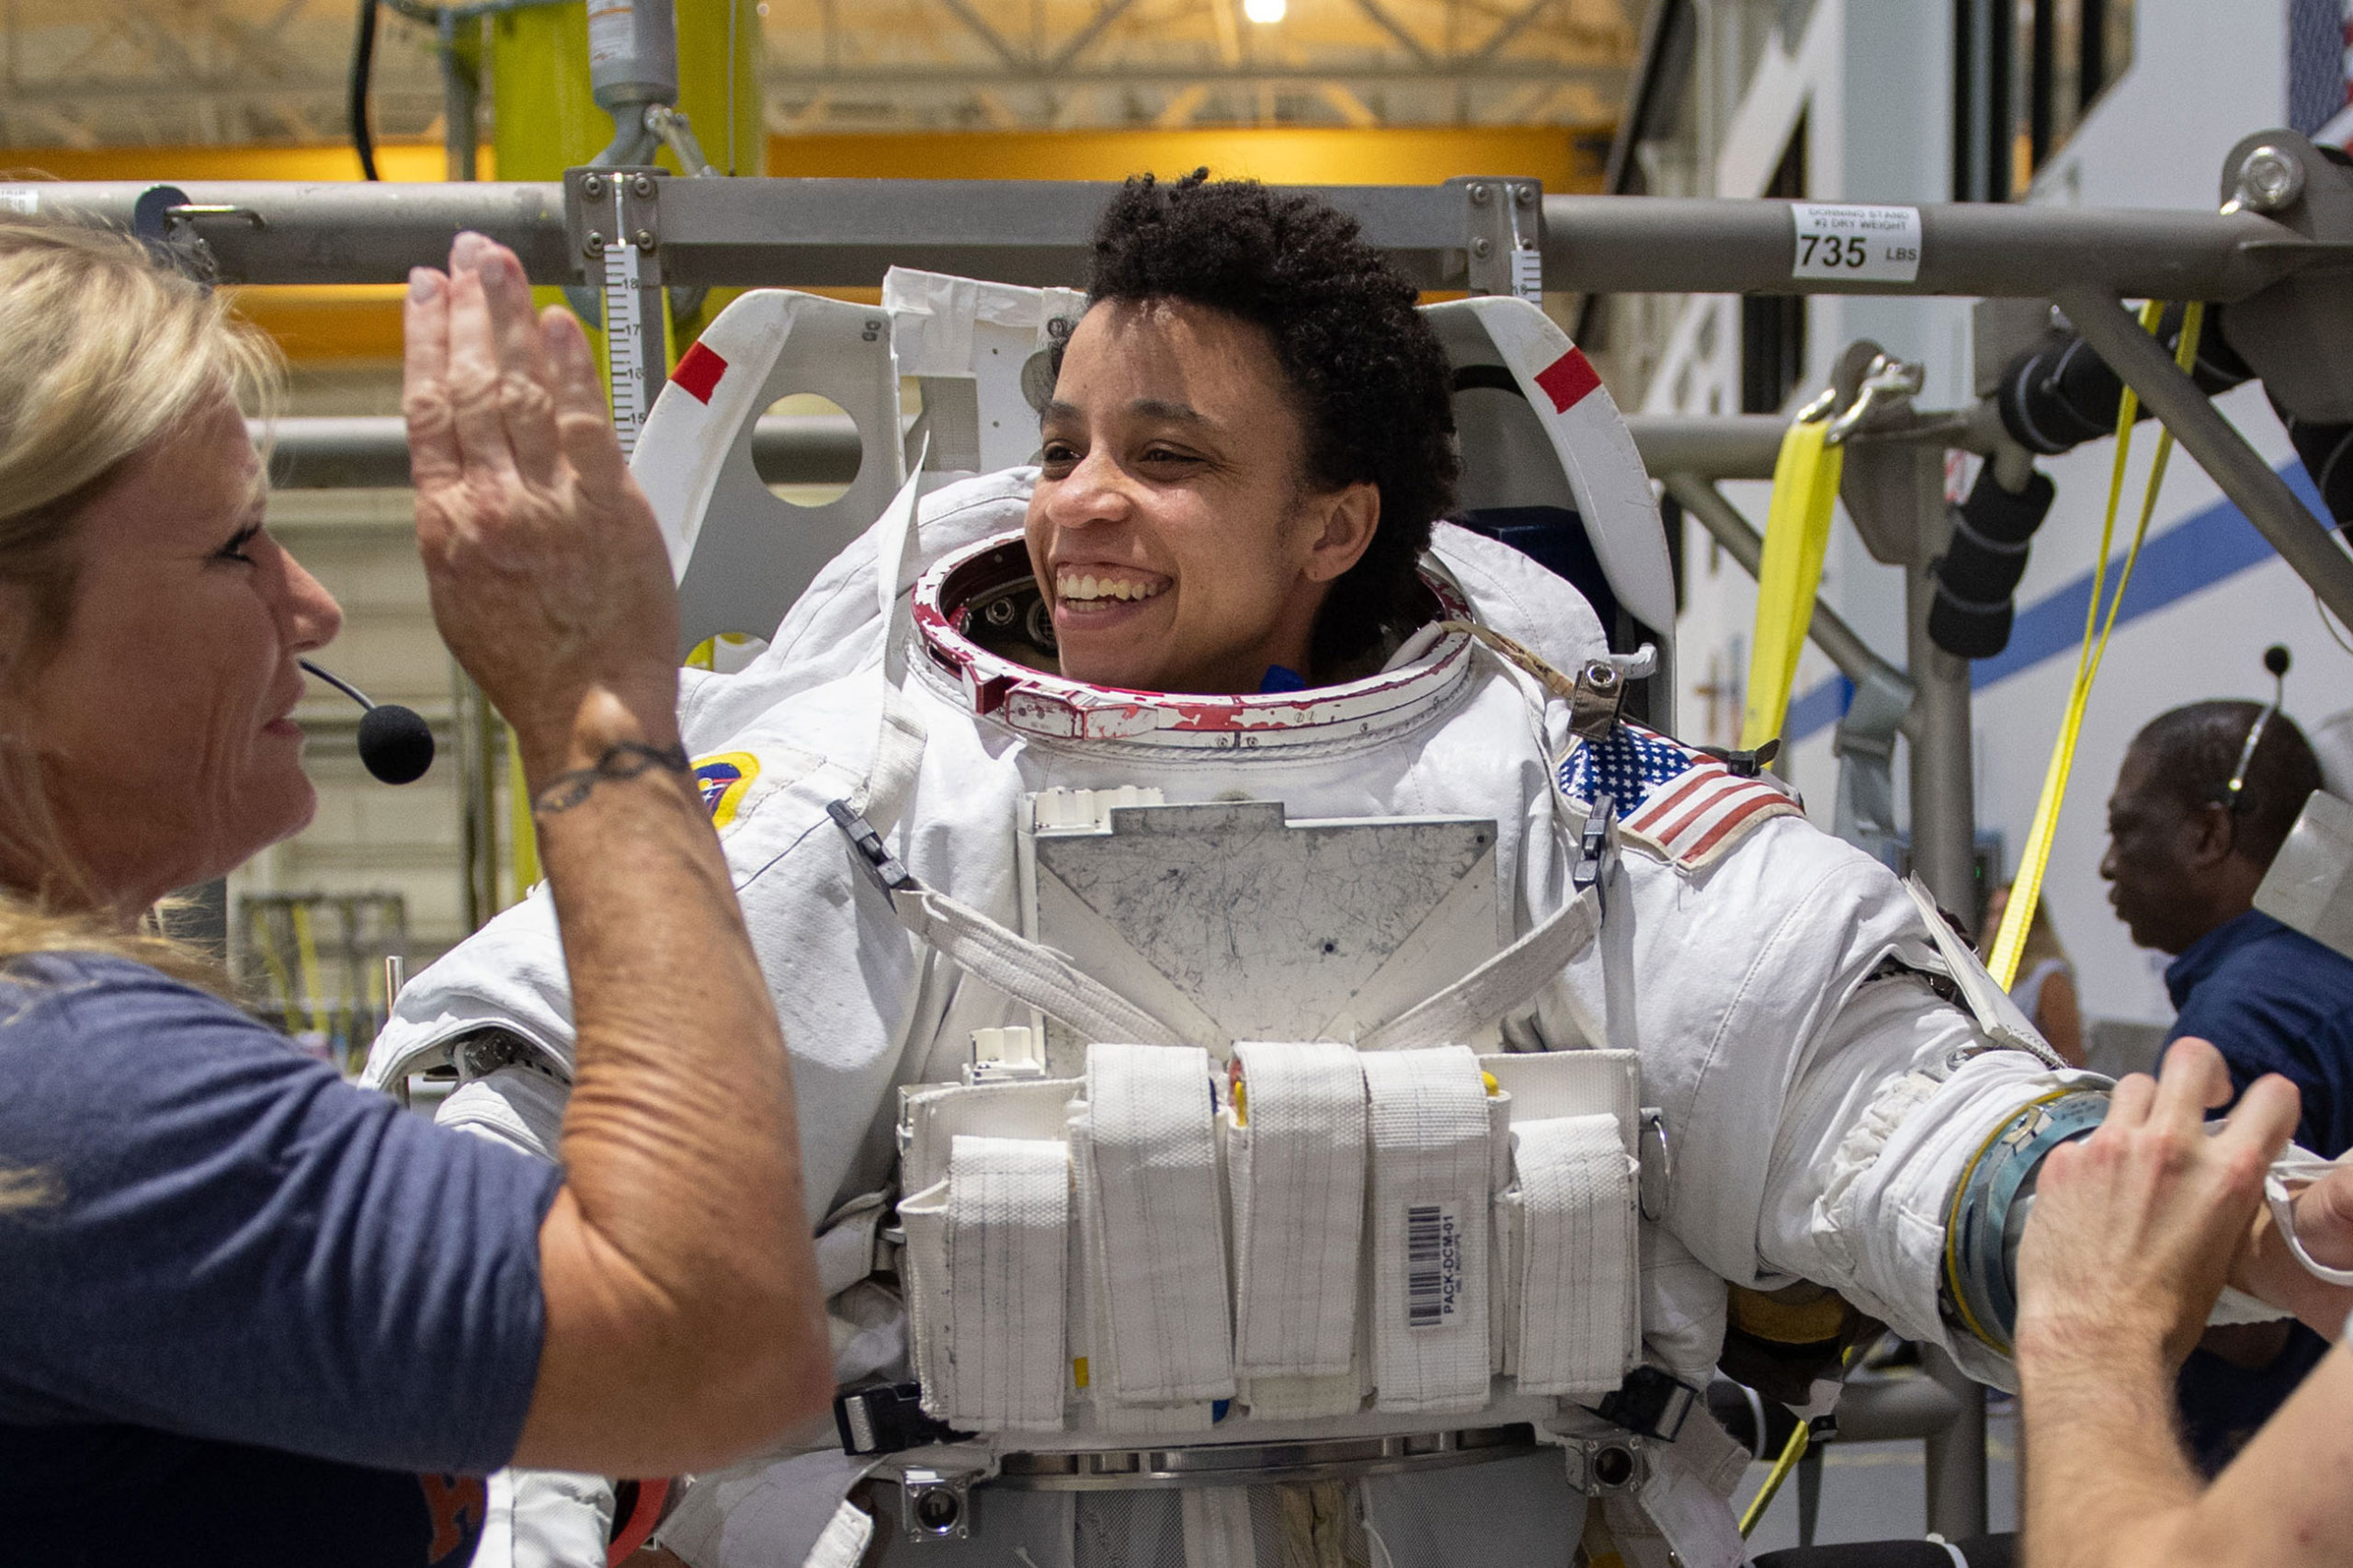 Then-astronaut candidate Jessica Watkins is helped into a spacesuit prior to underwater spacewalk training at NASA Johnson Space Center's Neutral Buoyancy Laboratory in Houston, May 22, 2019.